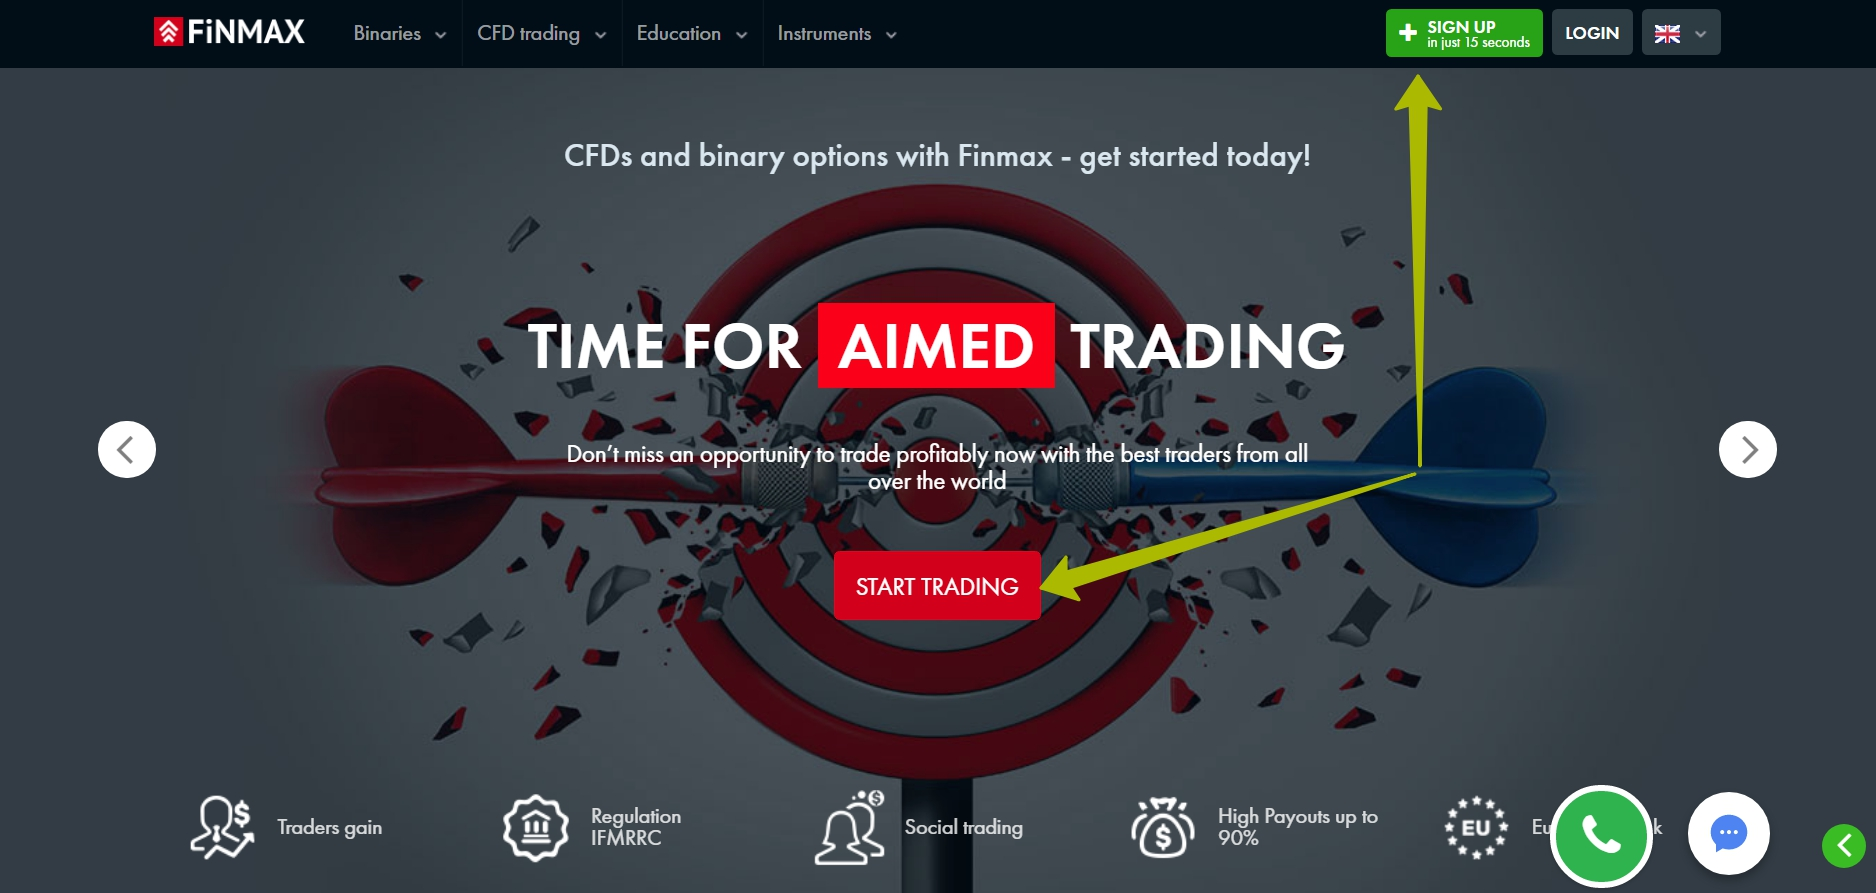 Advantages of Finmax. Finmax Binary Options Broker Review 2019.